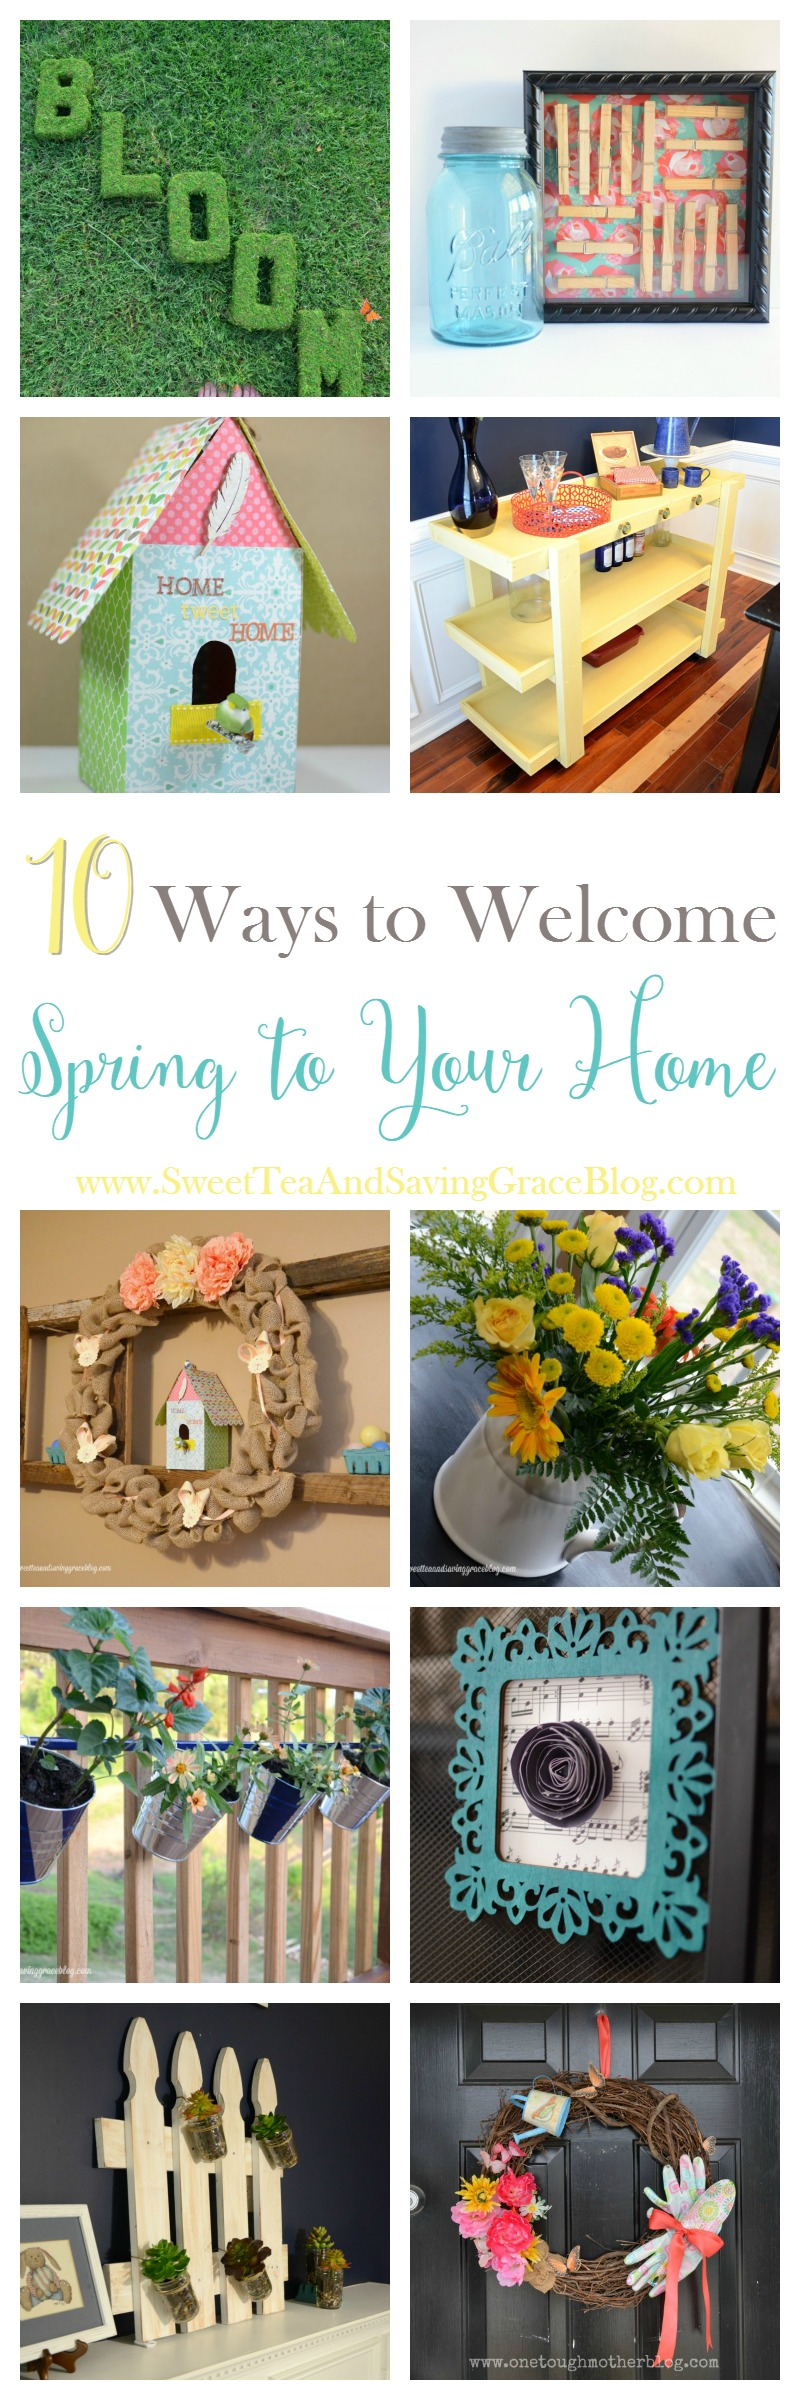 Try these 10 ways to welcome spring into your home! Bright & cheery colors, lots of flowers, and fun DIY projects bring sunshine and spring indoors!